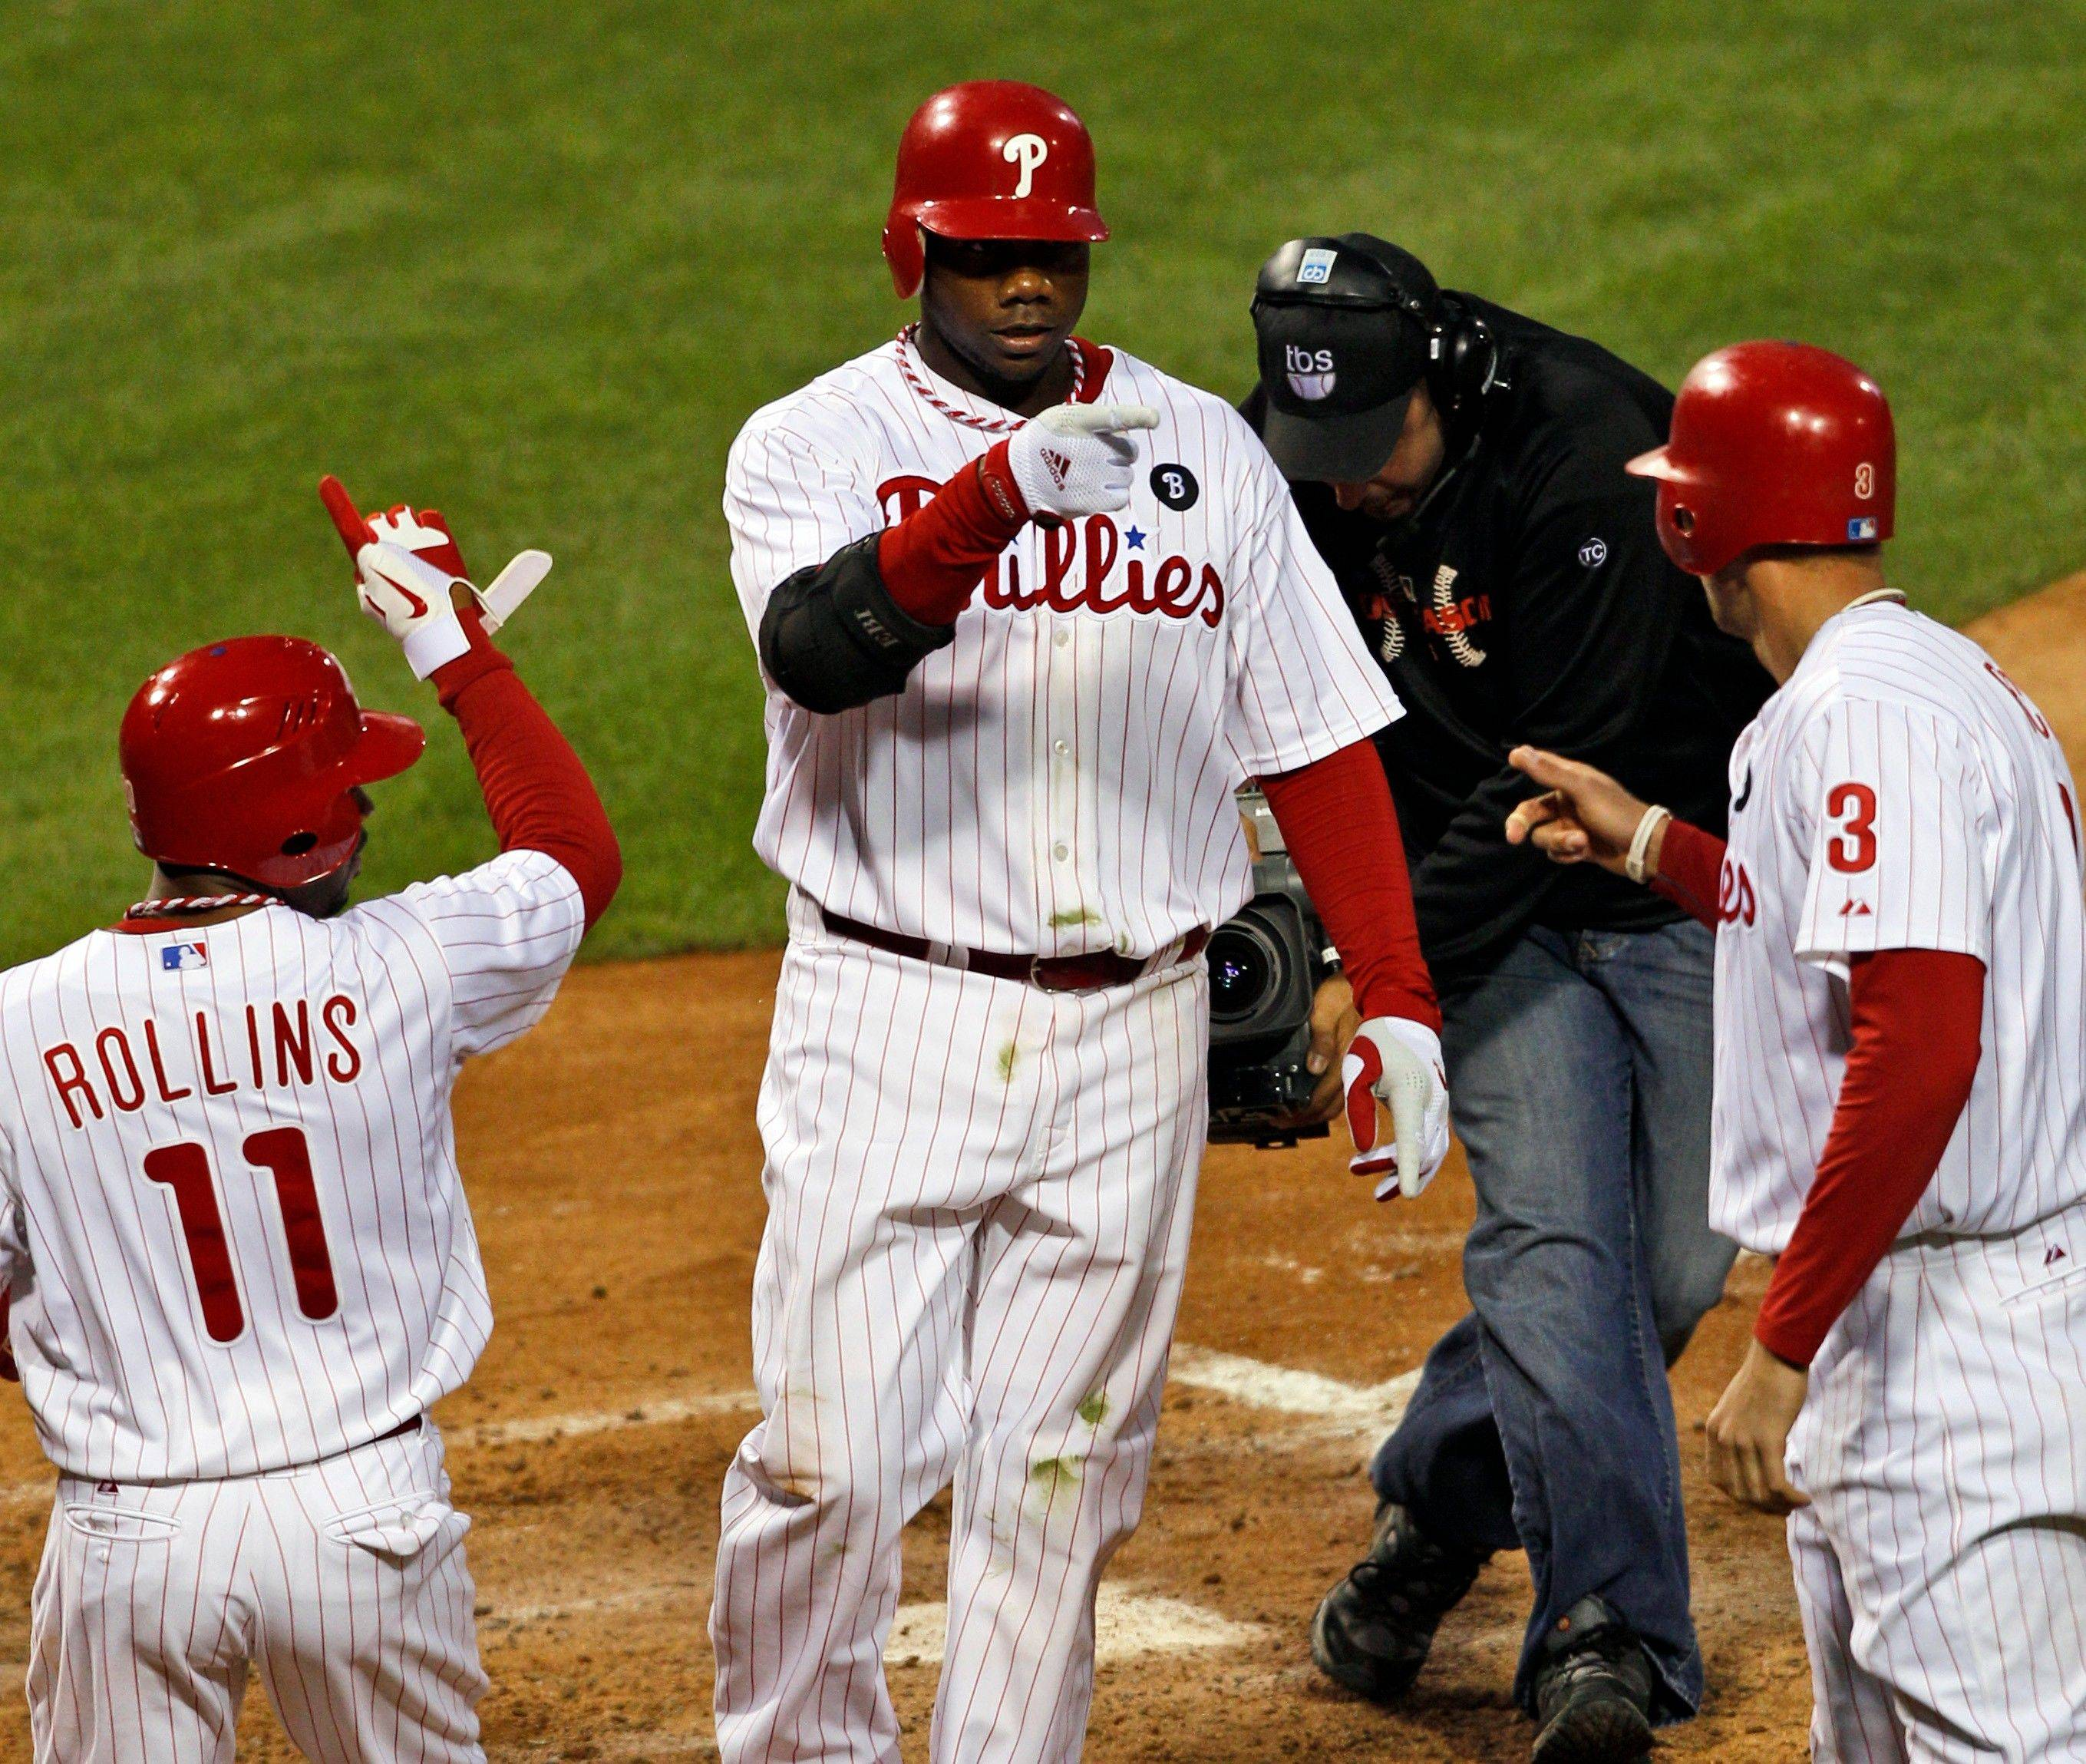 Ryan Howard's big homer helped the Philedelphia Phillies overcome a shaky start by pitcher Roy Halladay and take Game 1 of the NLDS as they topped the St. Louis Cardinals 11-6.